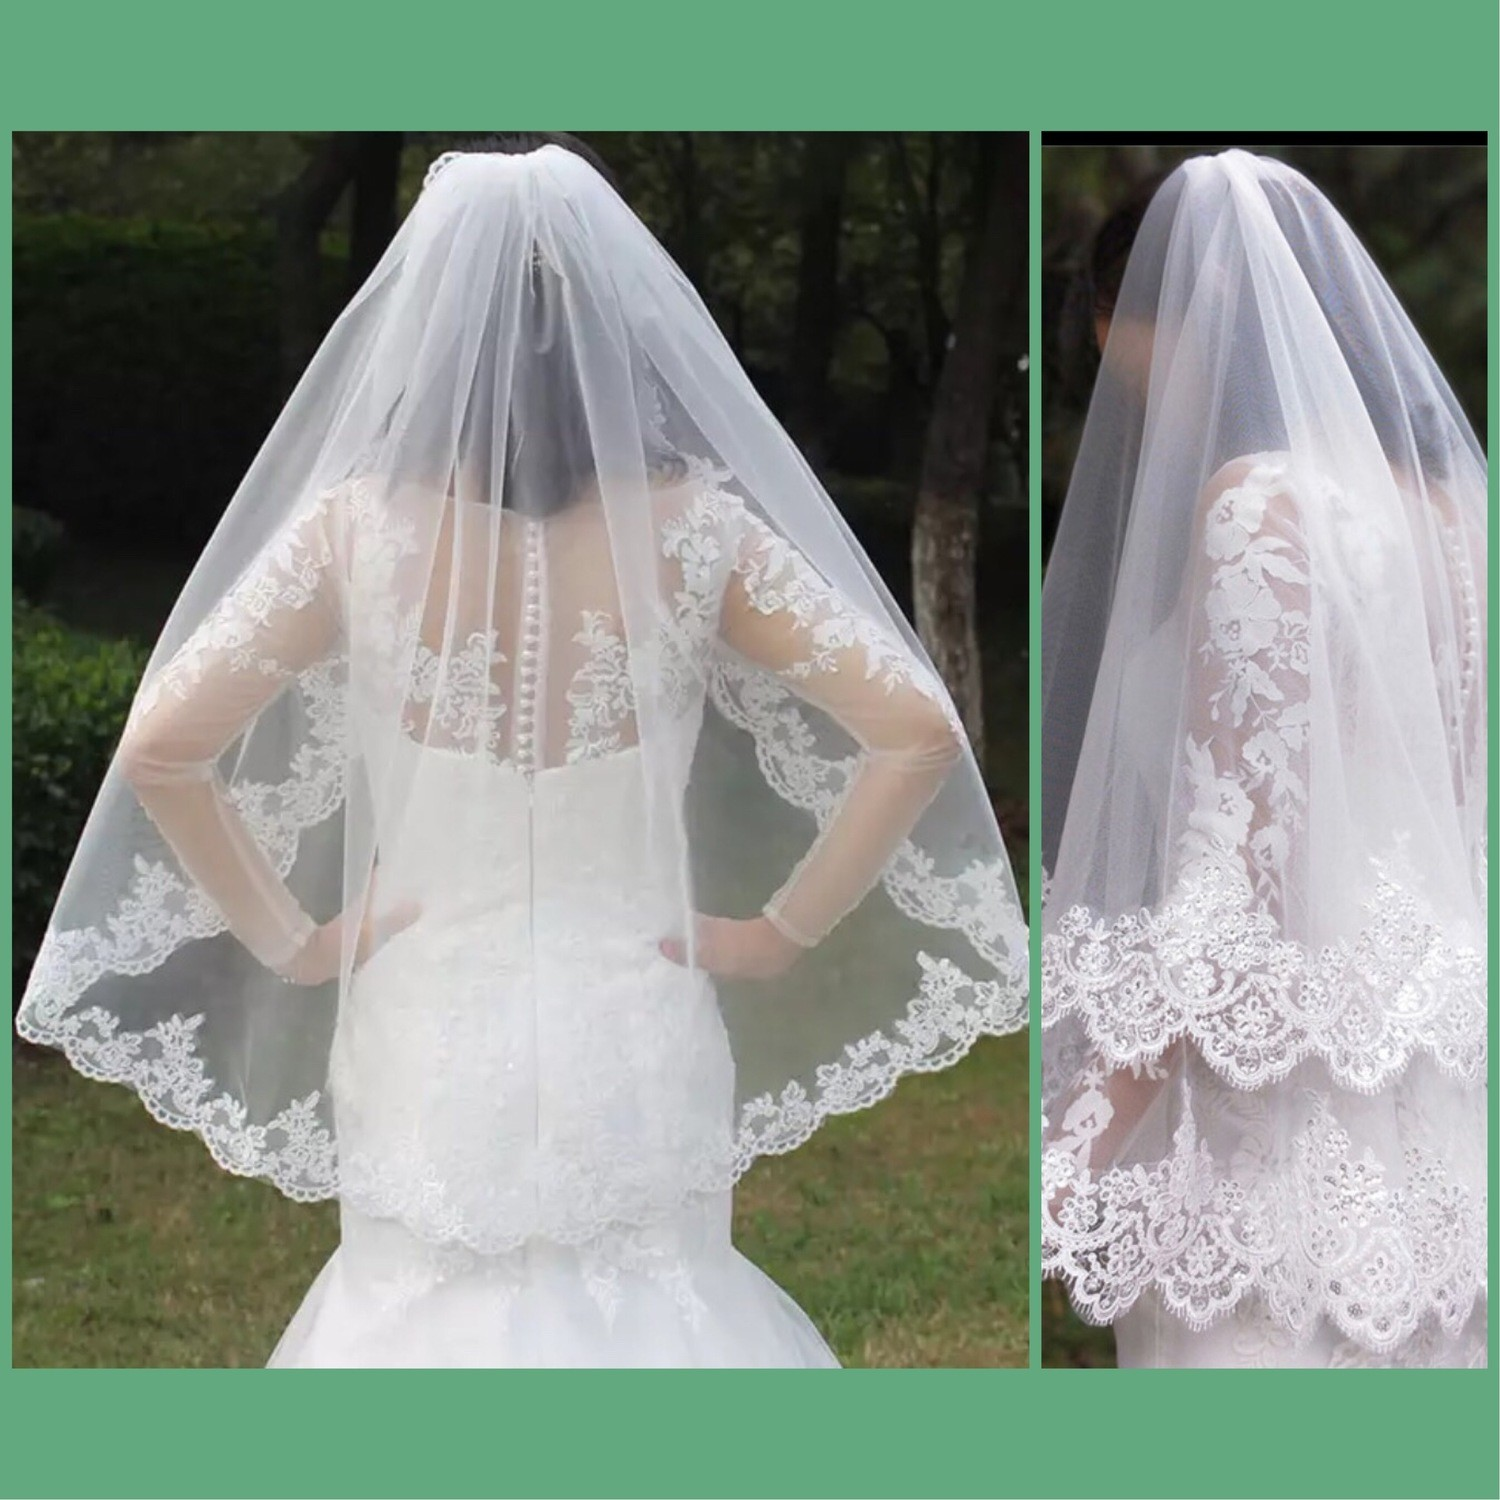 One 1T two Layer 2T Lace Appliques Edge Short Woodland Wedding Veils with Comb New White Ivory Bridal Veils